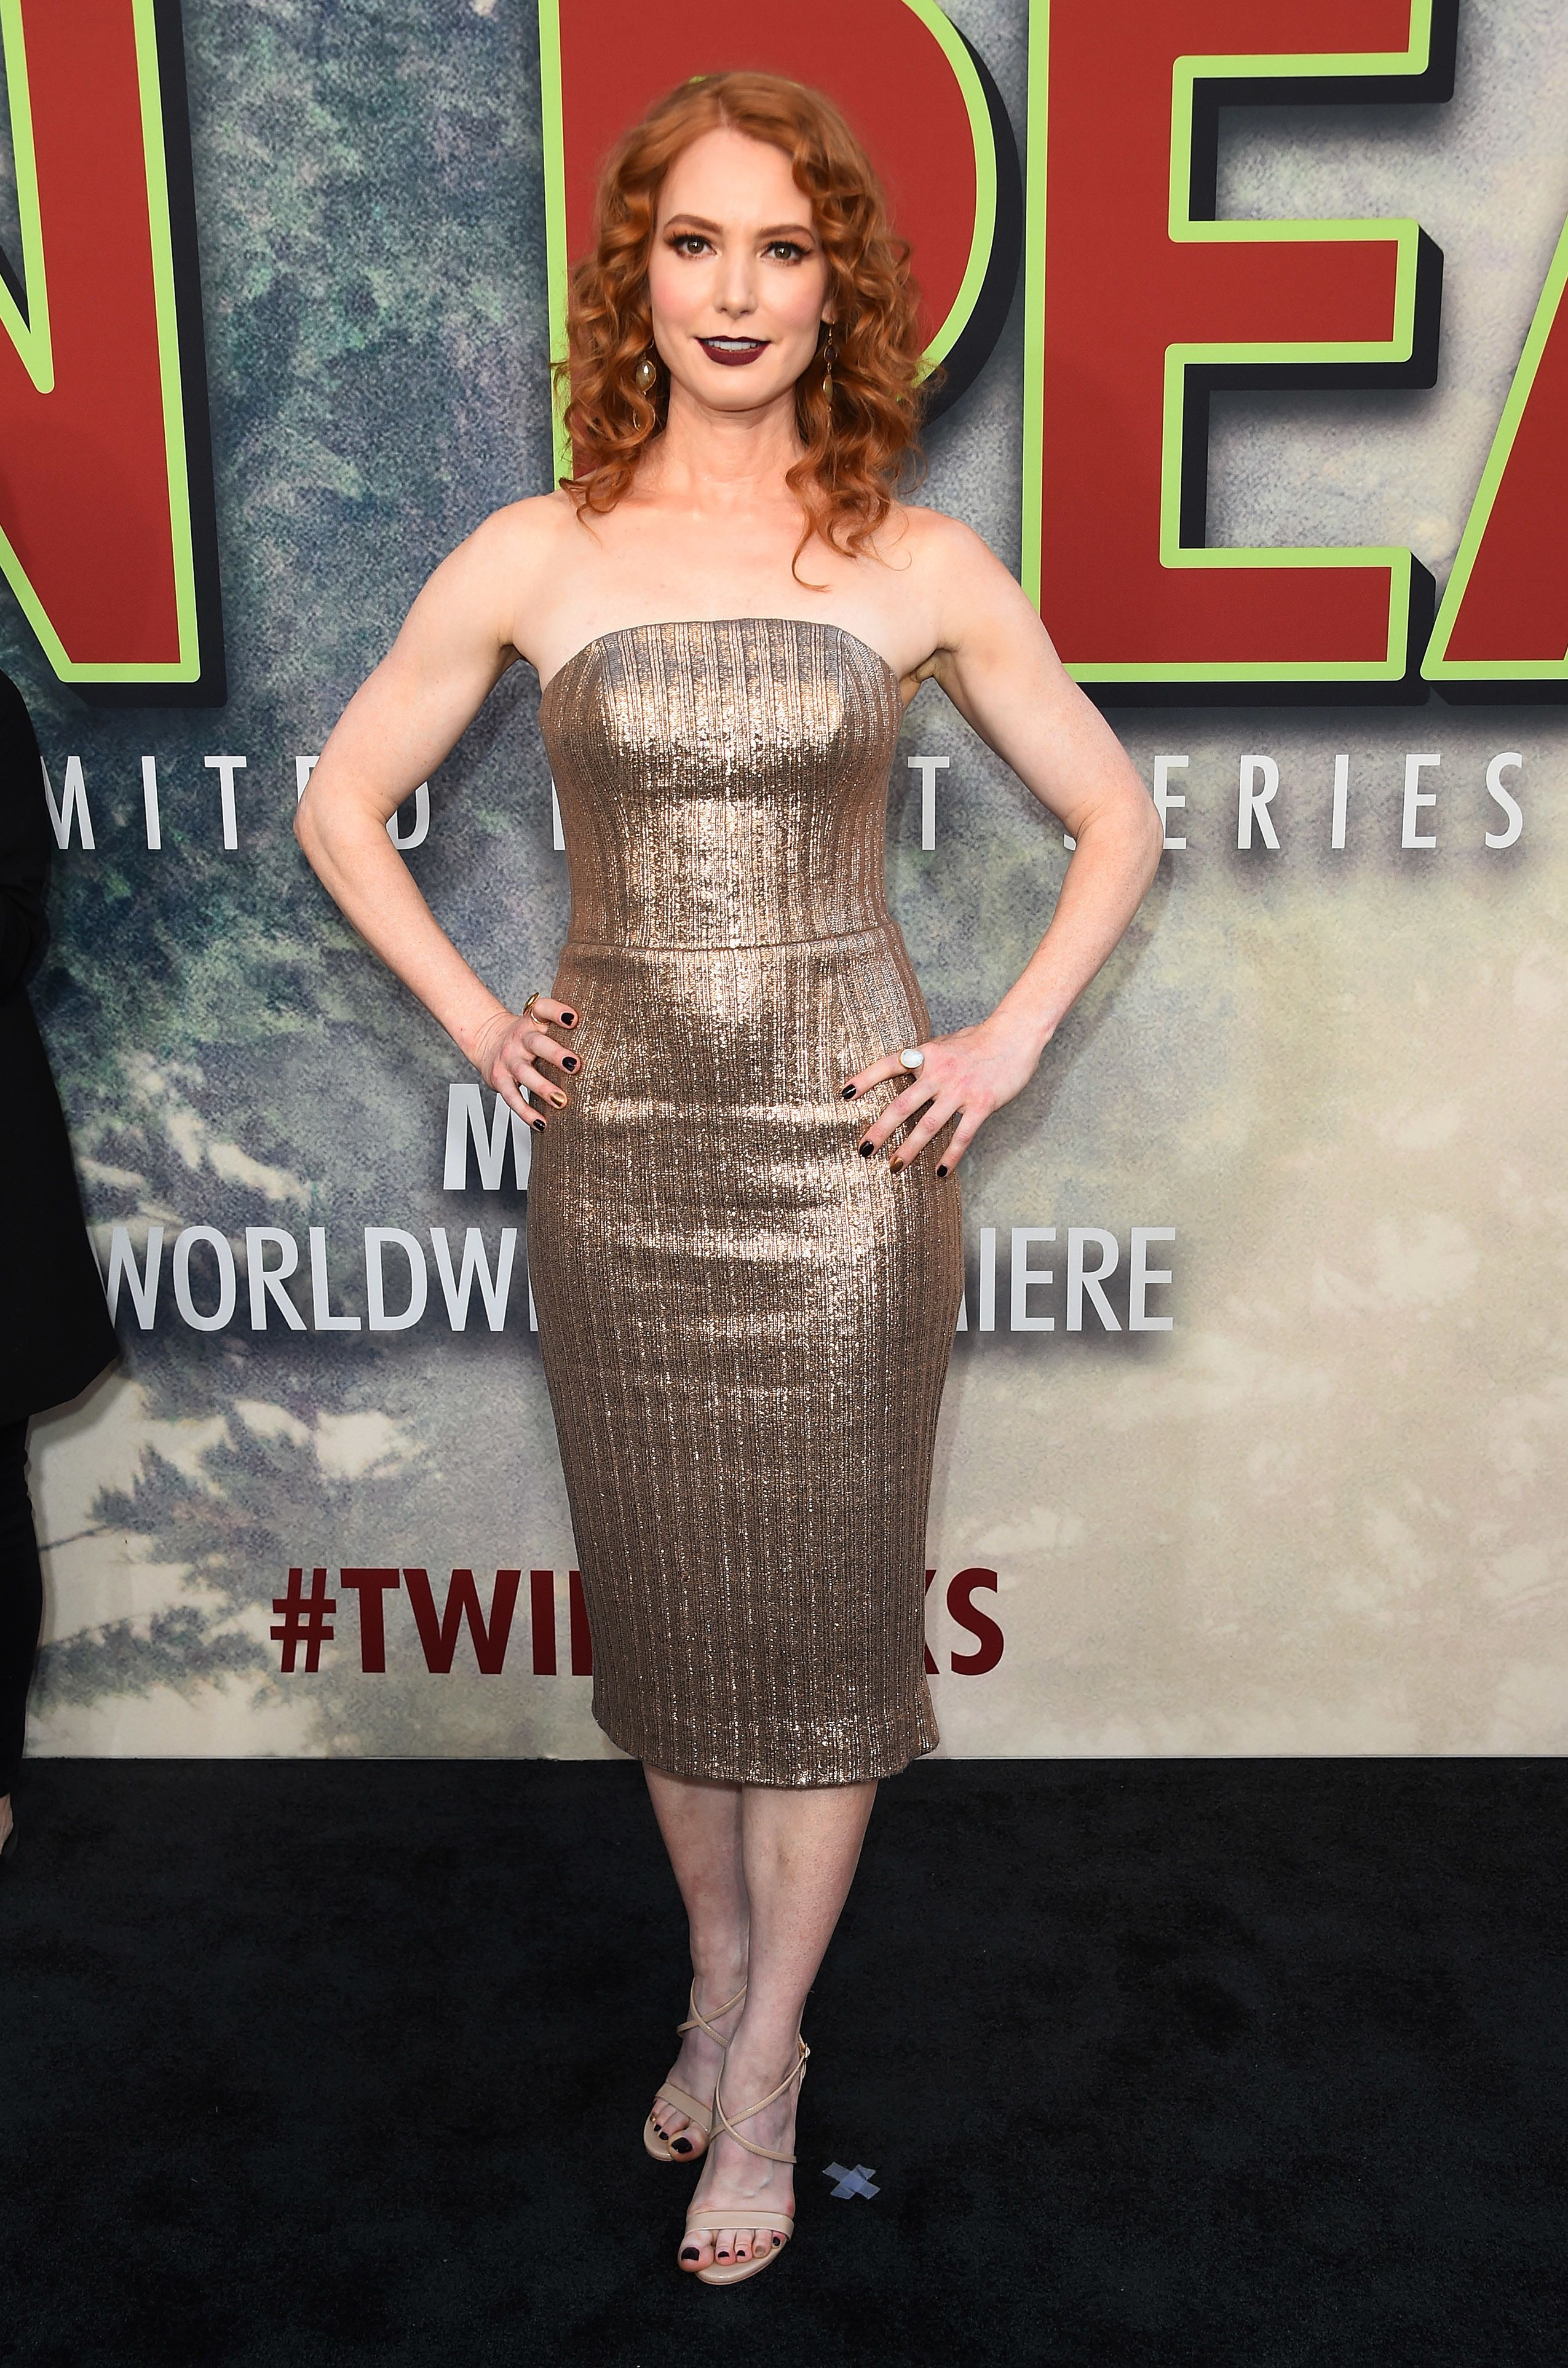 Celebrites Alicia Witt nudes (56 foto and video), Sexy, Paparazzi, Twitter, panties 2017